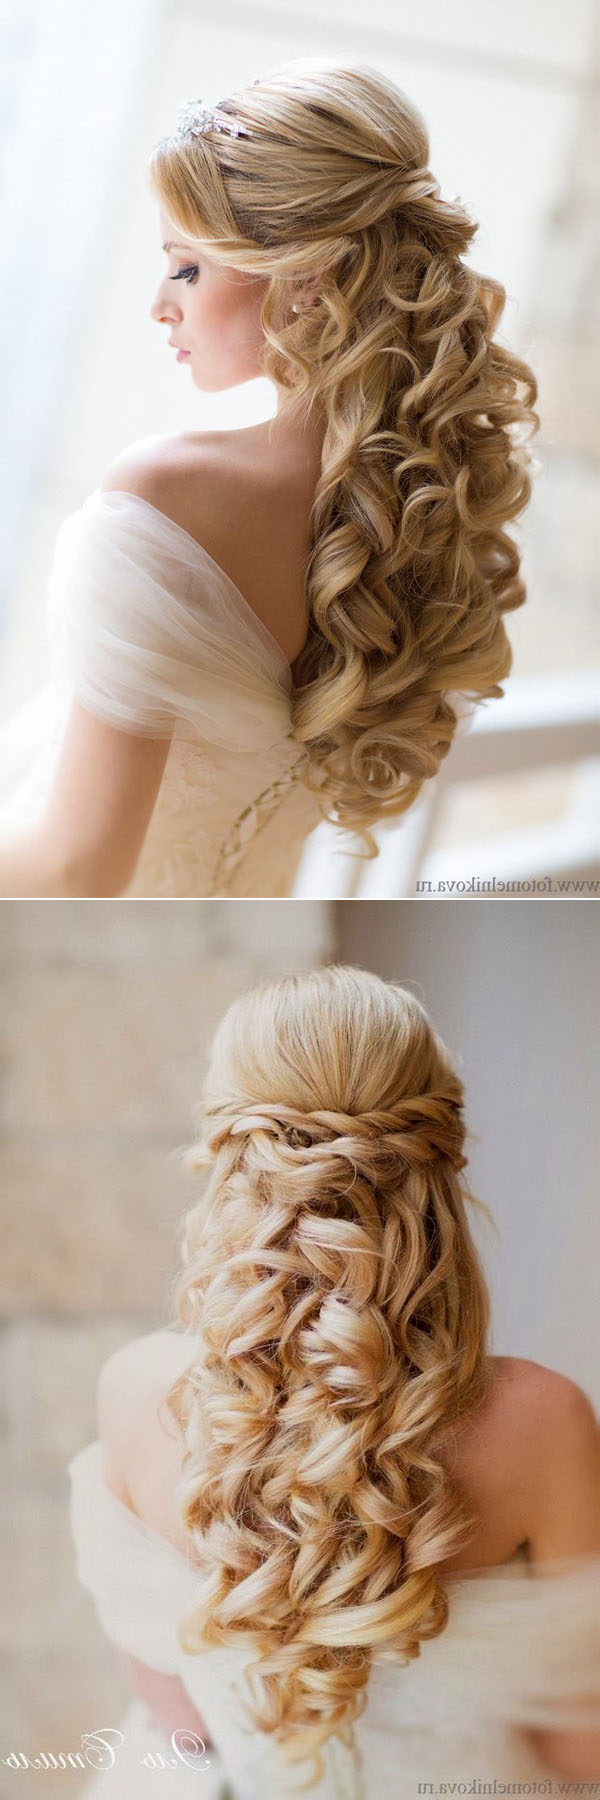 Most Current Subtle Curls And Bun Hairstyles For Wedding Intended For 20 Awesome Half Up Half Down Wedding Hairstyle Ideas (View 11 of 20)